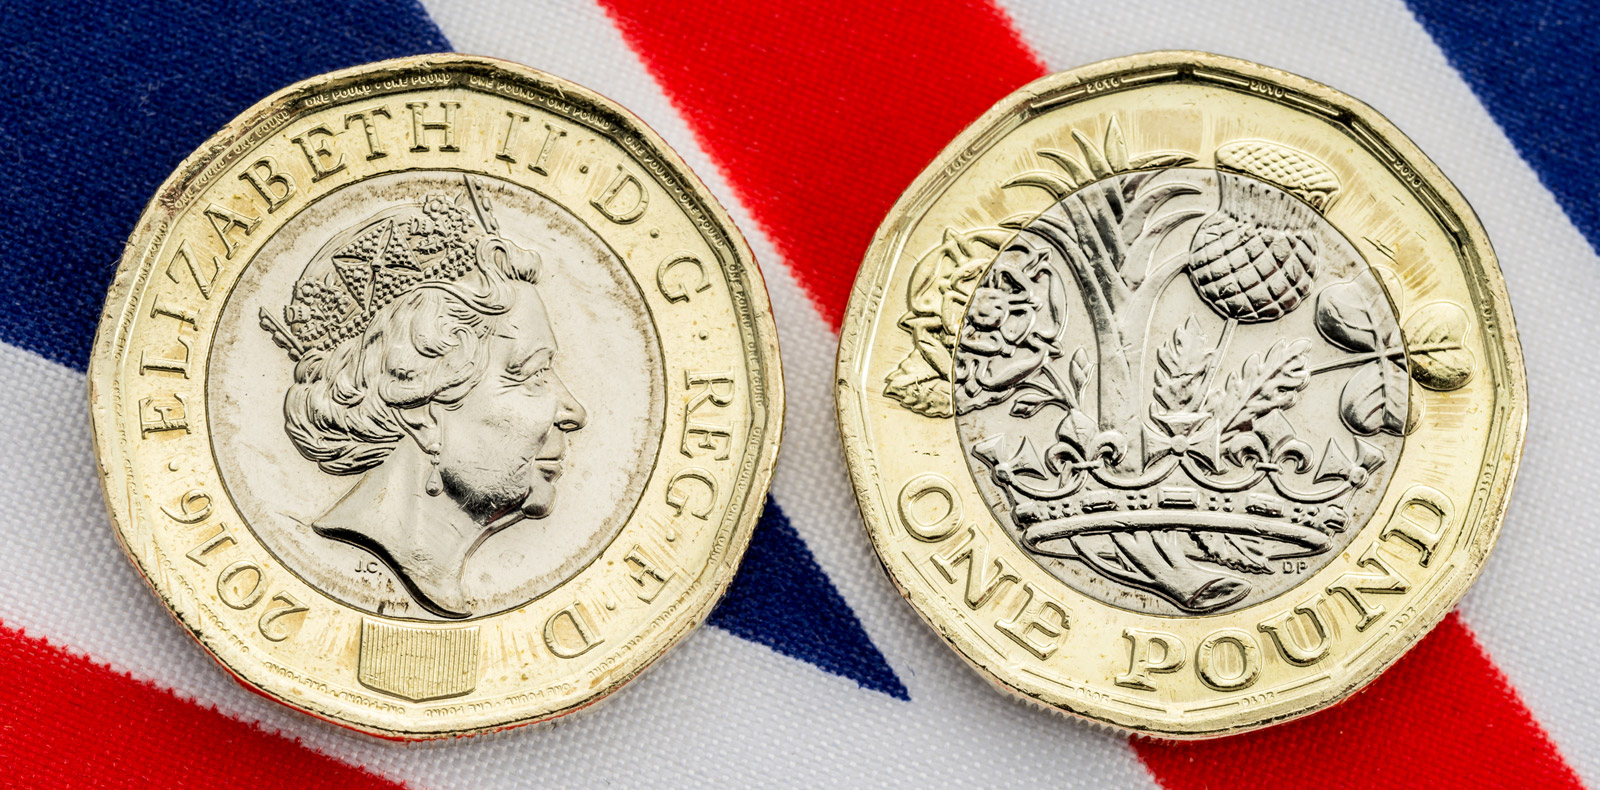 UK Politics drive Pounds value